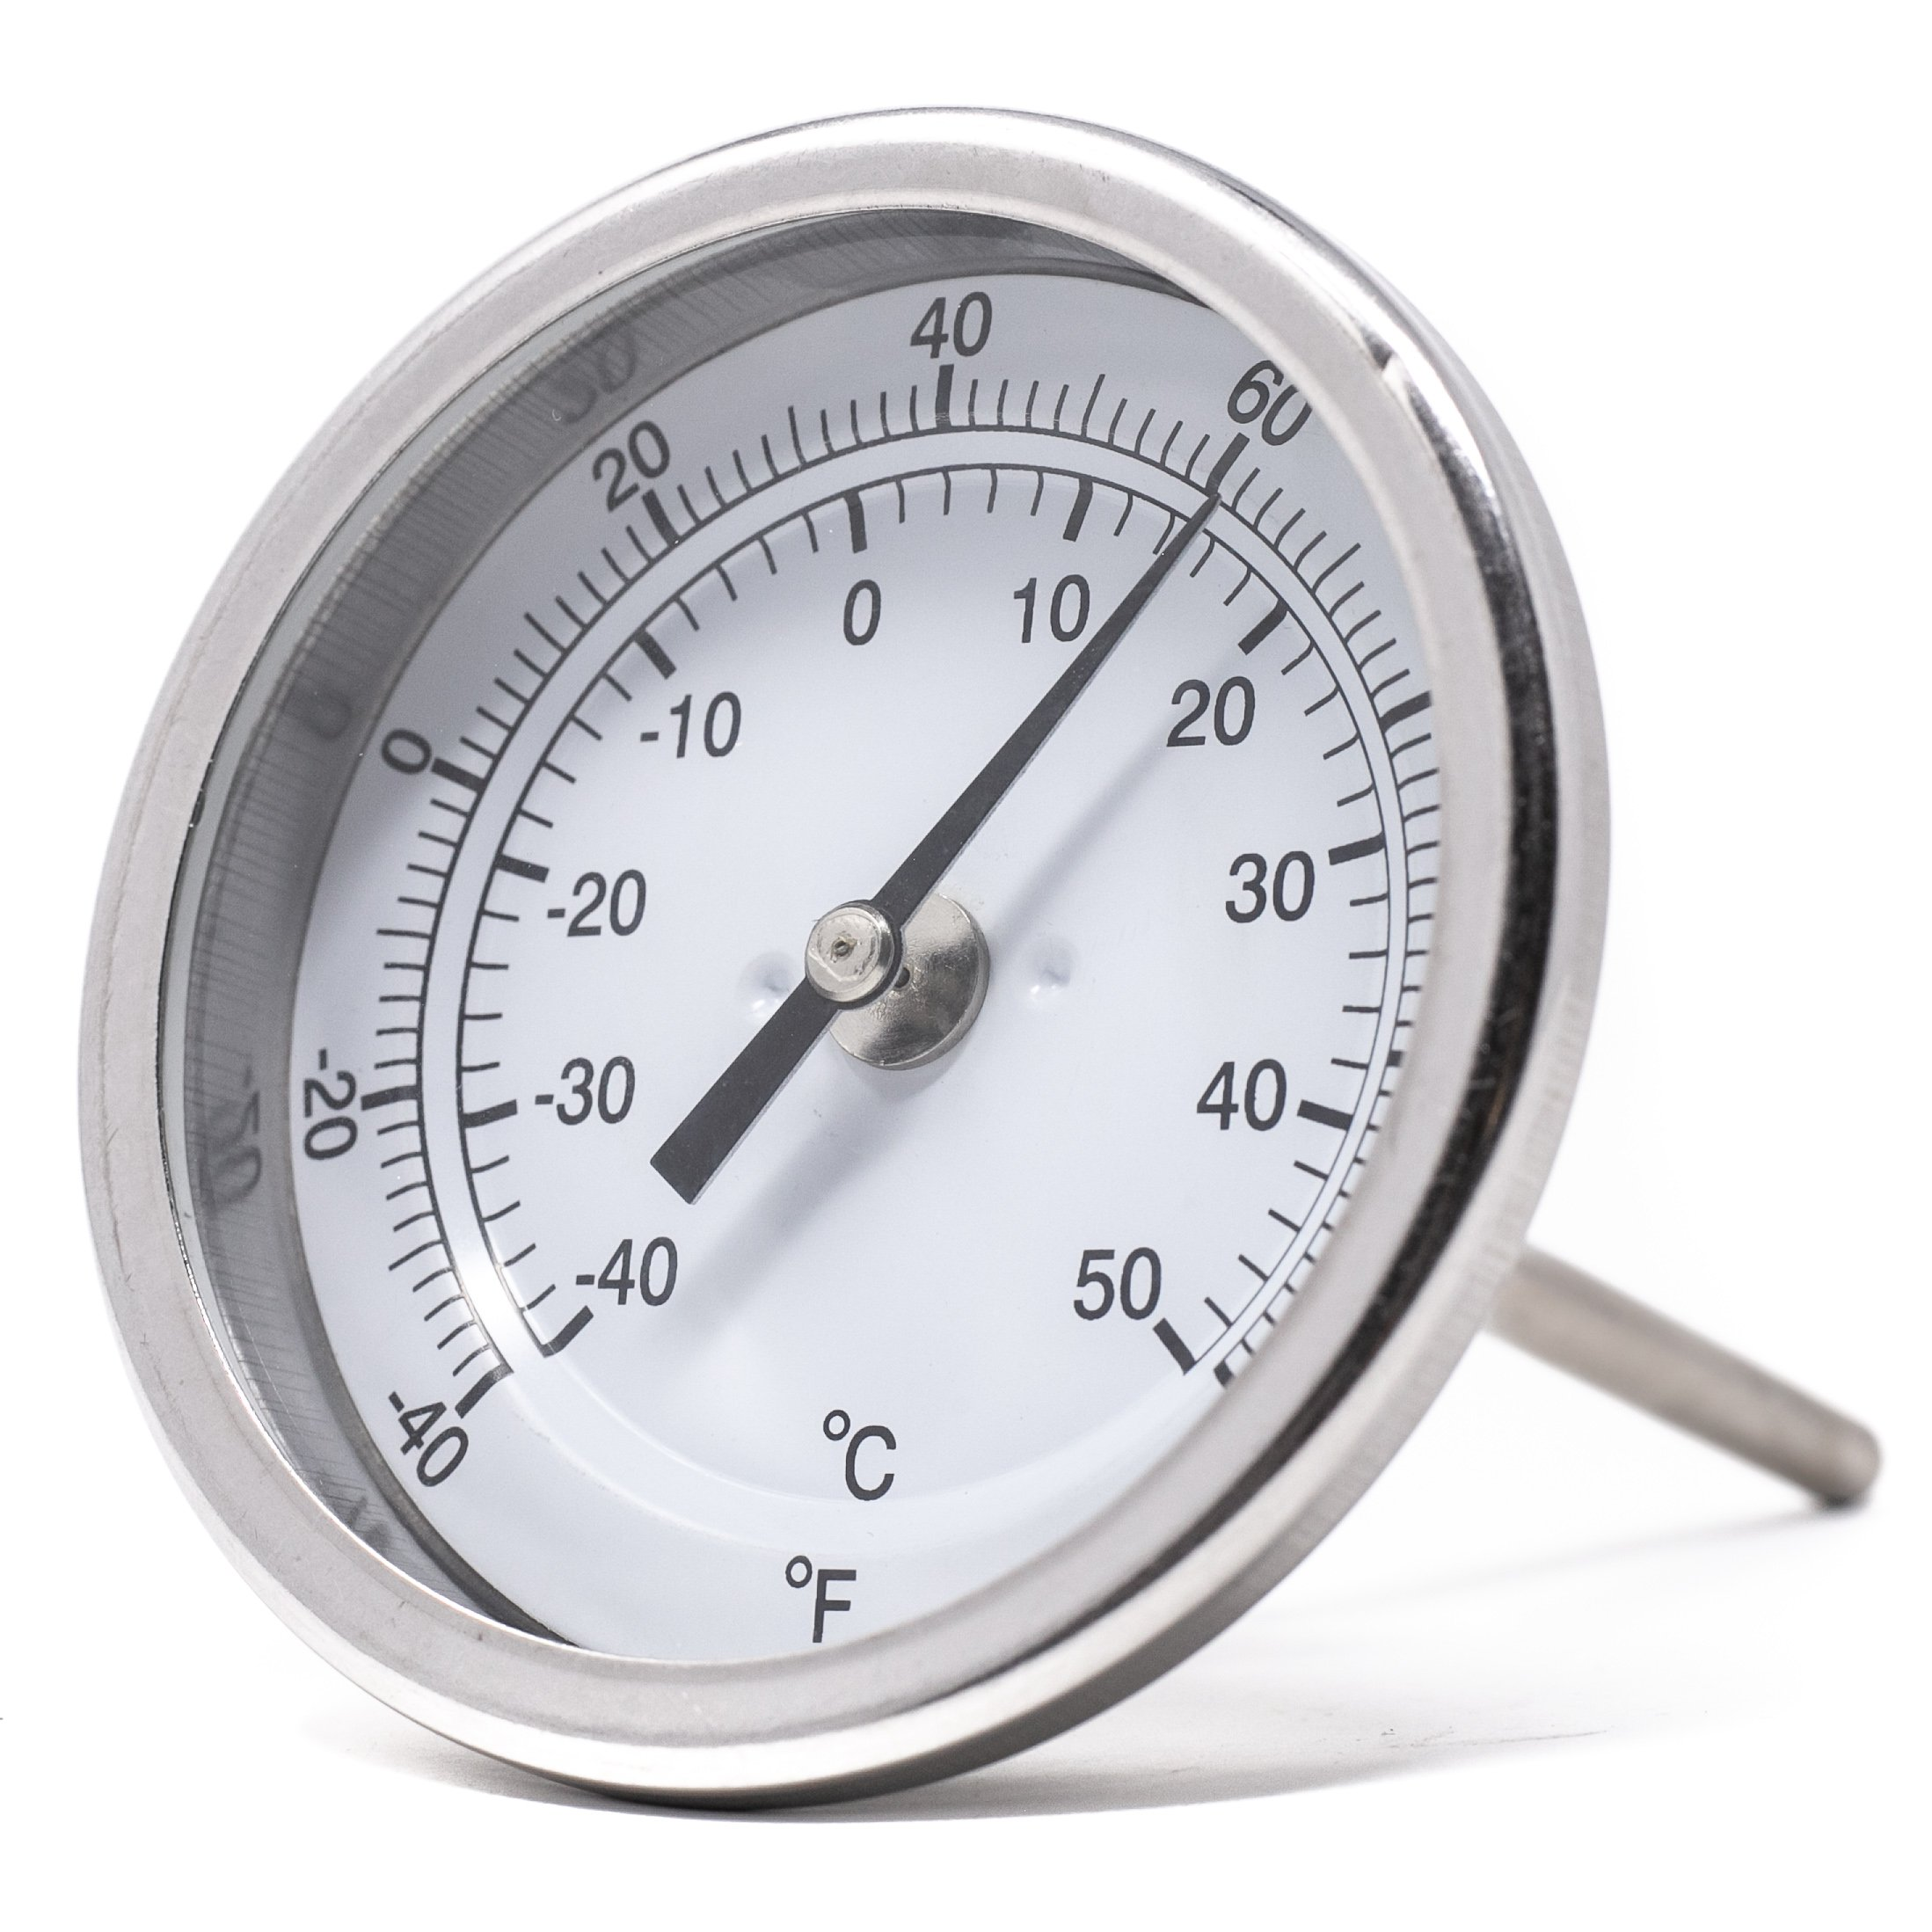 PIC Gauge B3B4-AA 3'' Dial Size, -40/120°F and -40/50°C, 4'' Stem Length, Back Angle Connection, Stainless Steel Case, 316 Stainless Steel Stem Bimetal Thermometer